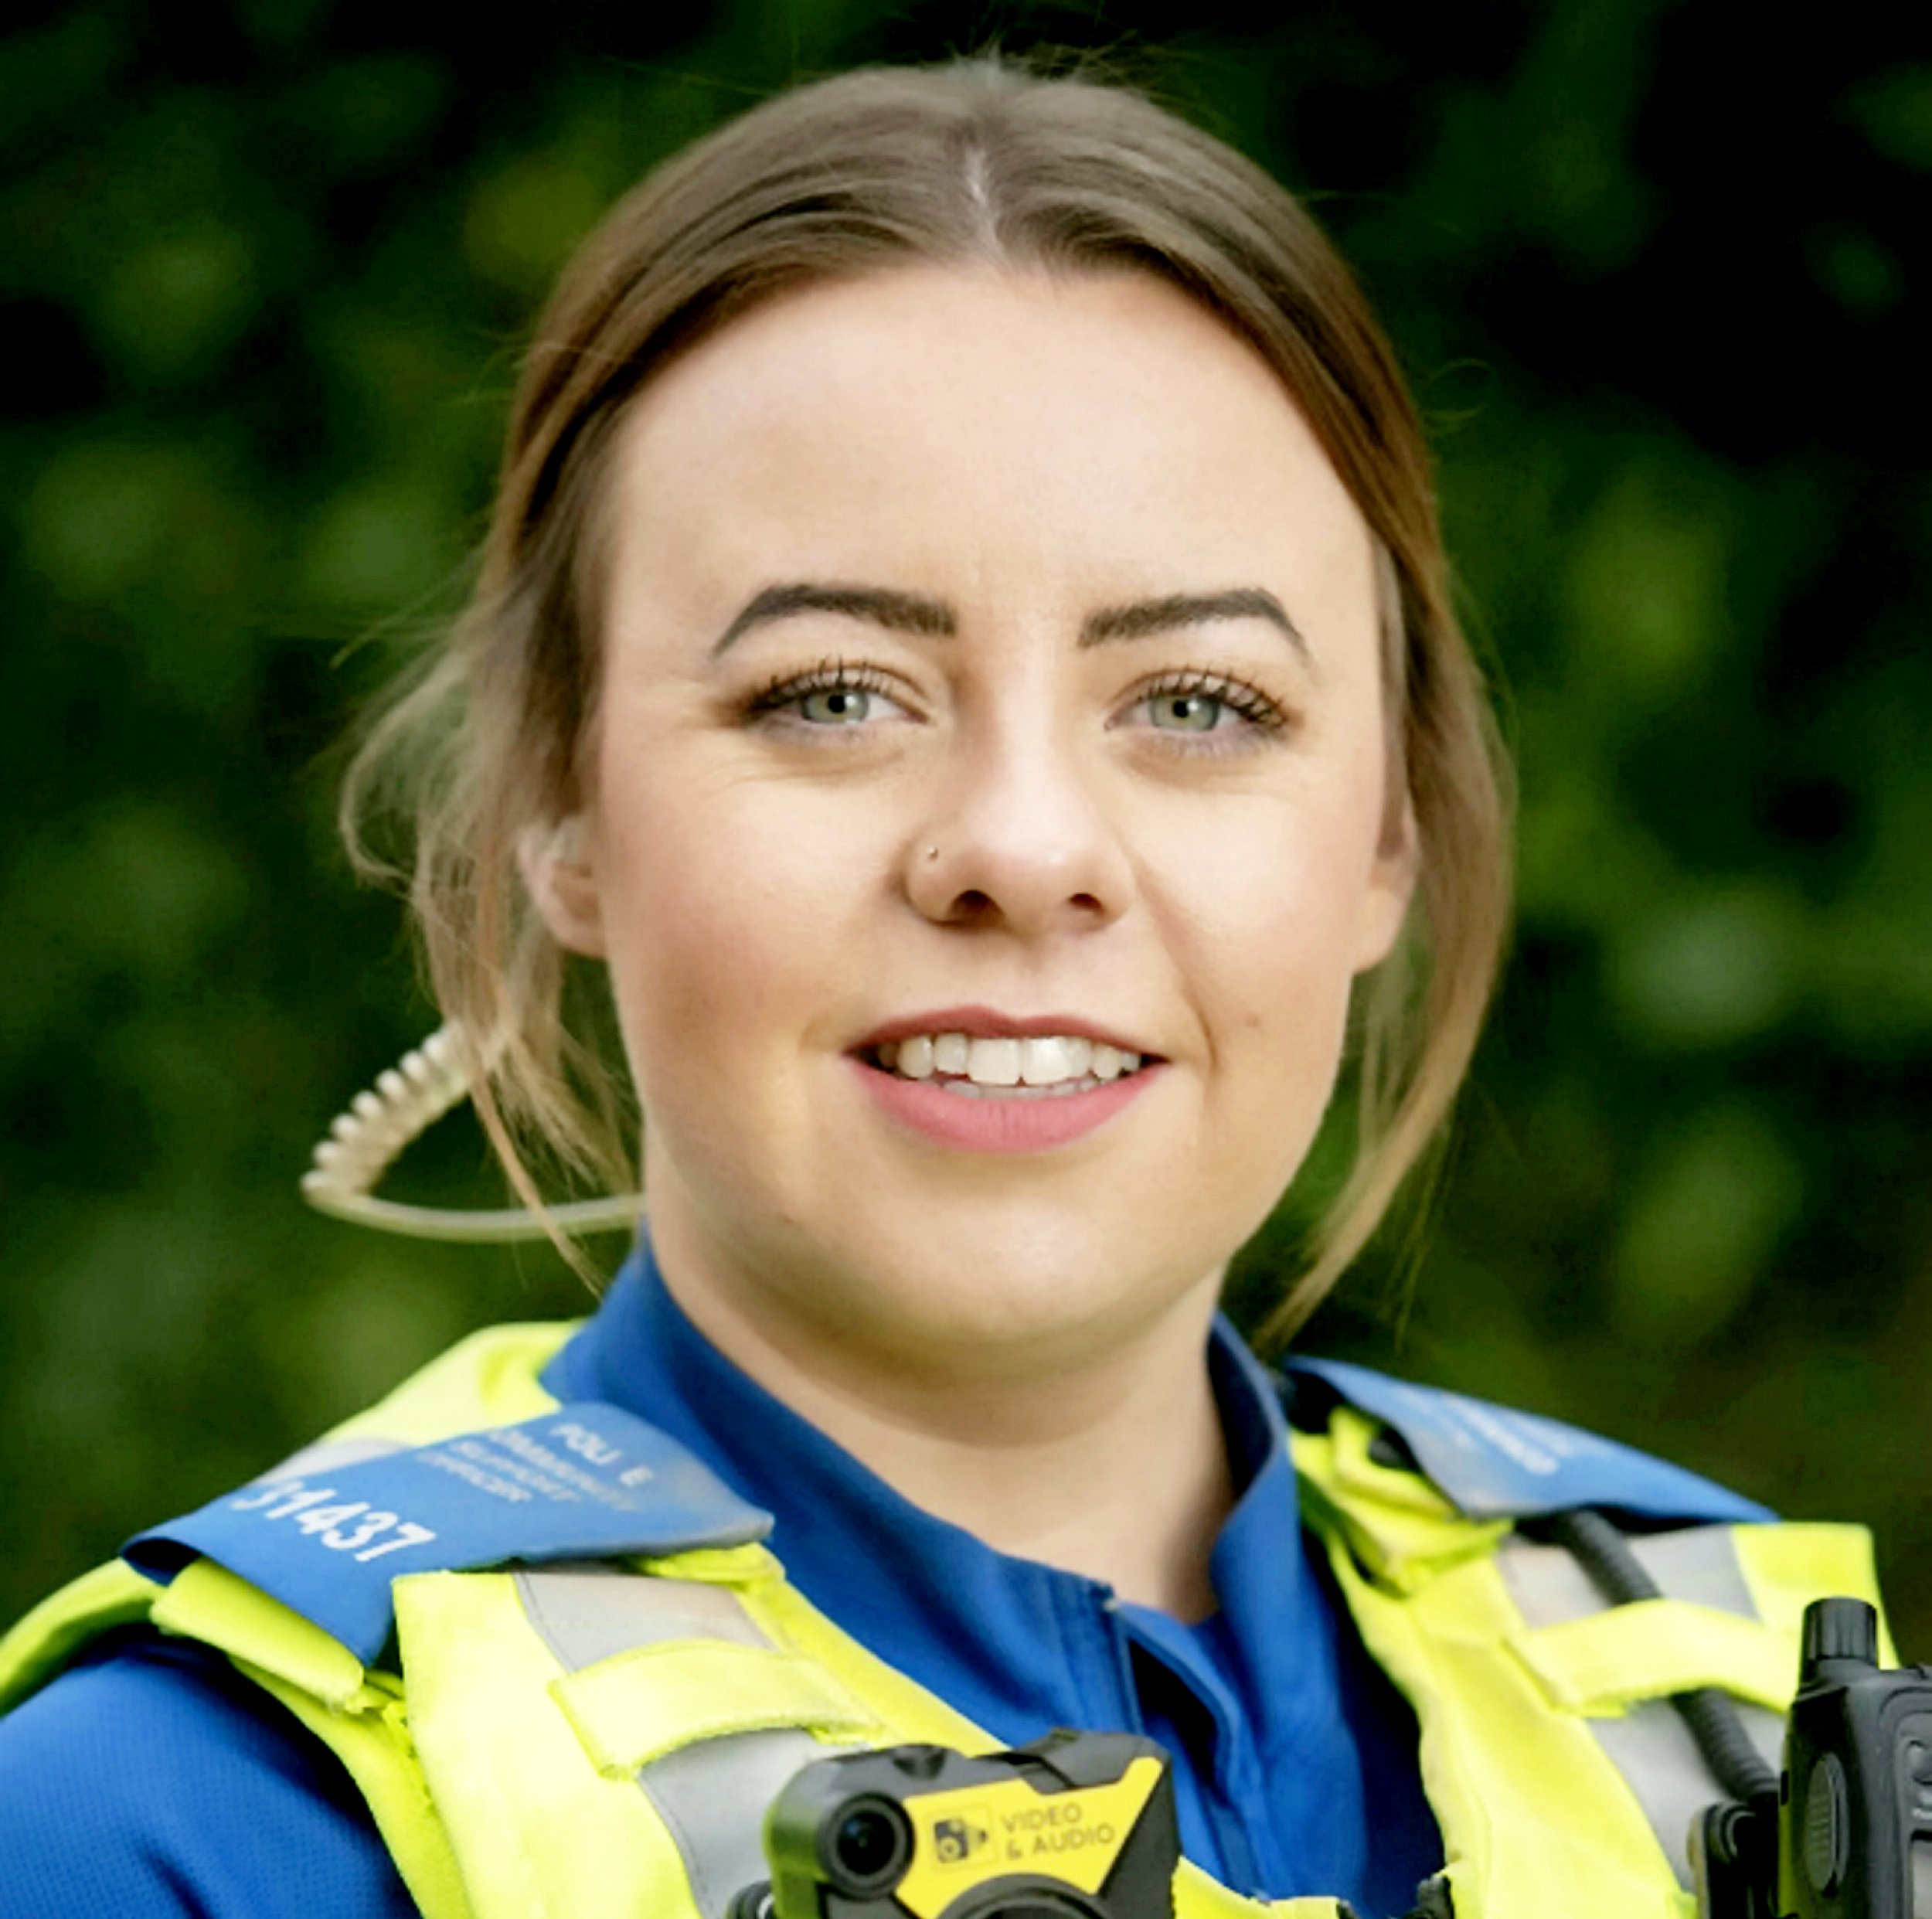 Holly Burke. A woman who died in a collision in Bearwood last night has been named as Holly Burke, a serving West Midlands Police Community Support Officer (PCSO). See SWNS story SWMDcrash. Holly, aged 28, was based at Nechells as part of the Washwood Heath neighbourhood team and had been a PCSO for 14 months. The collision occurred on Lordswood Road at the junction with Hagley Road at 11.30pm. A speeding Renault Scenic had failed to stop for officers. They pursued the car for 15 minutes until a stinger was deployed on Bearwood Road, however the Renault continued at speed and collided with Holly?s car. Despite the best efforts of police and medical professionals, Holly sadly died at the scene. Her family has been informed and are being supported at this time. The 42-year-old driver of the Renault was arrested on suspicion of death by dangerous driving and driving under the influence of drugs. He remains in police custody.